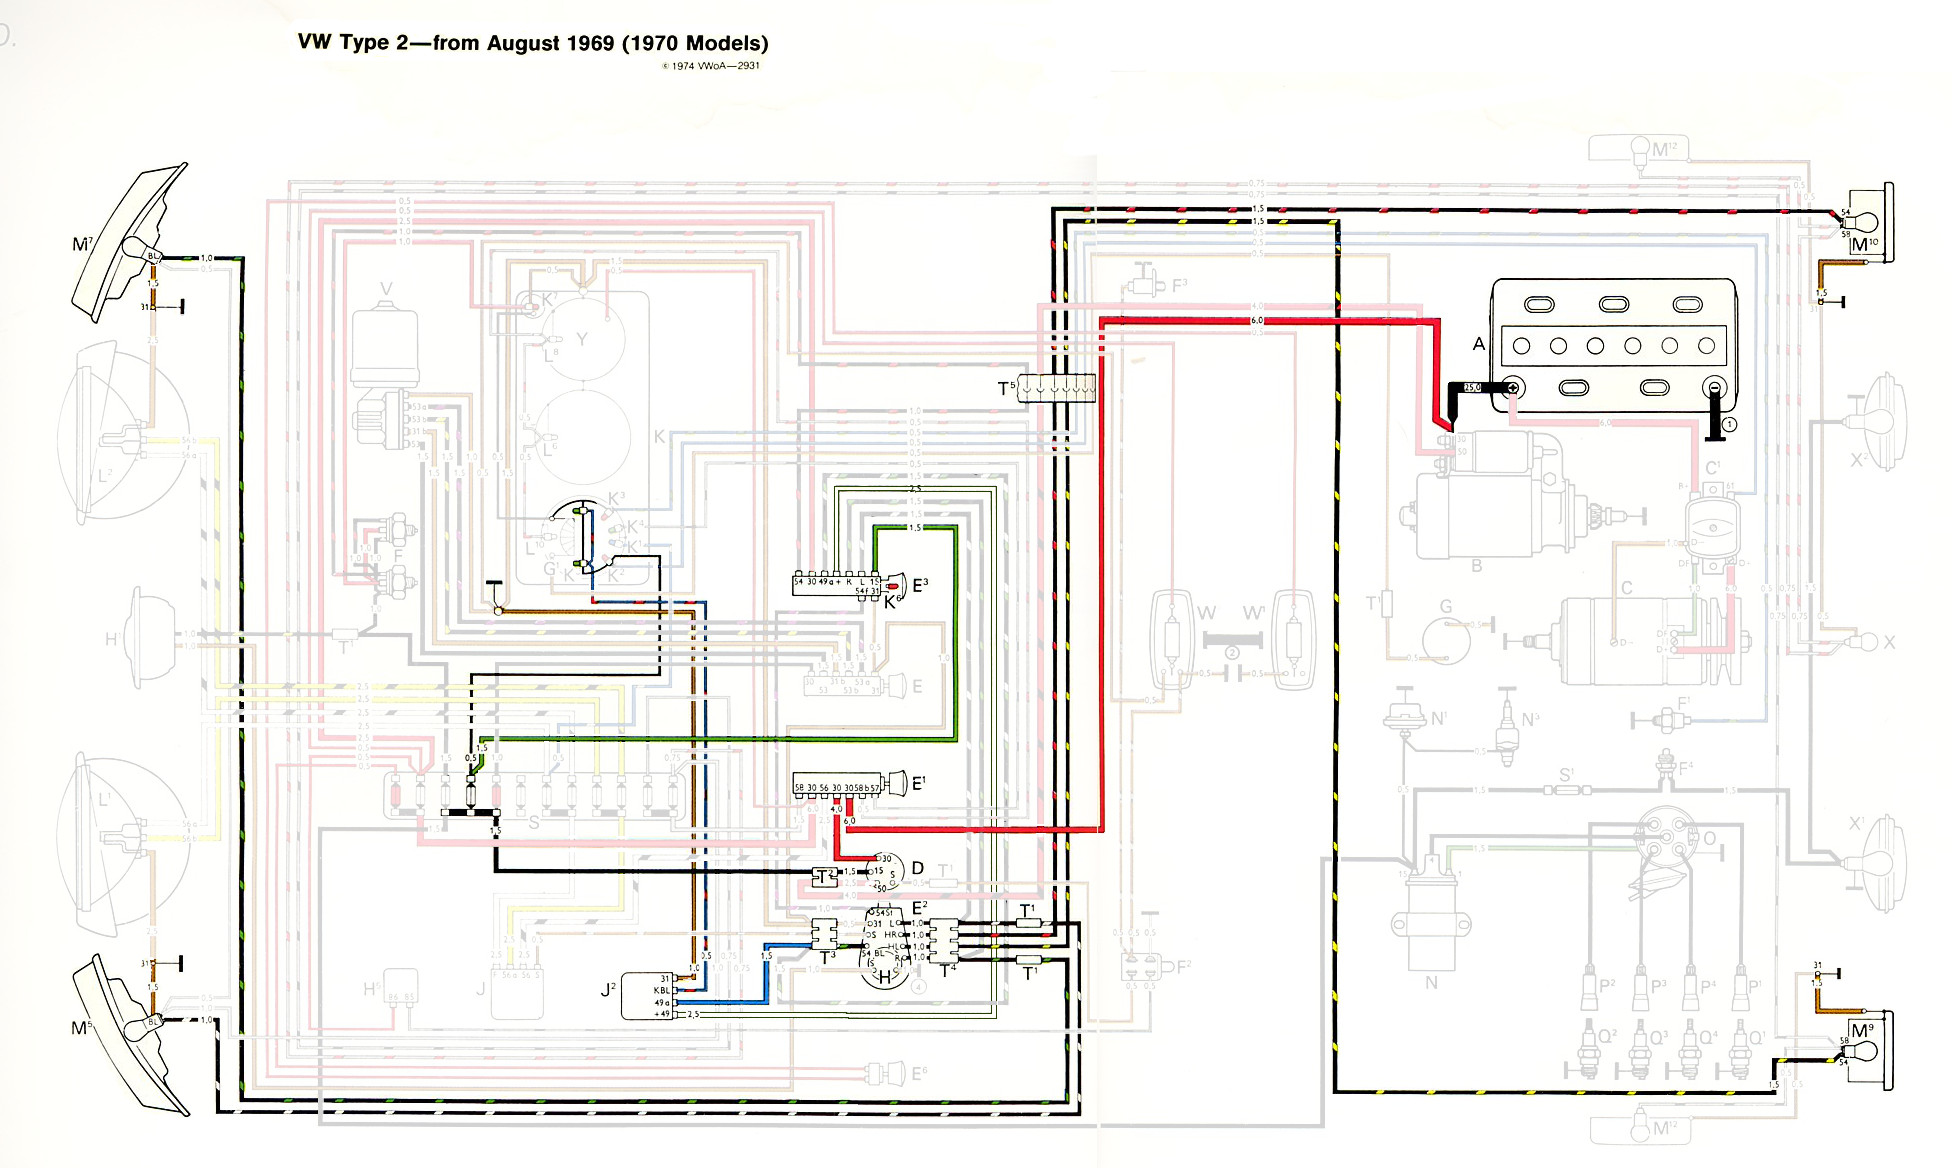 1970bus_signals 1970 vw beetle wiring diagram 1969 vw beetle turn signal wiring 1971 vw bus wiring diagram at honlapkeszites.co